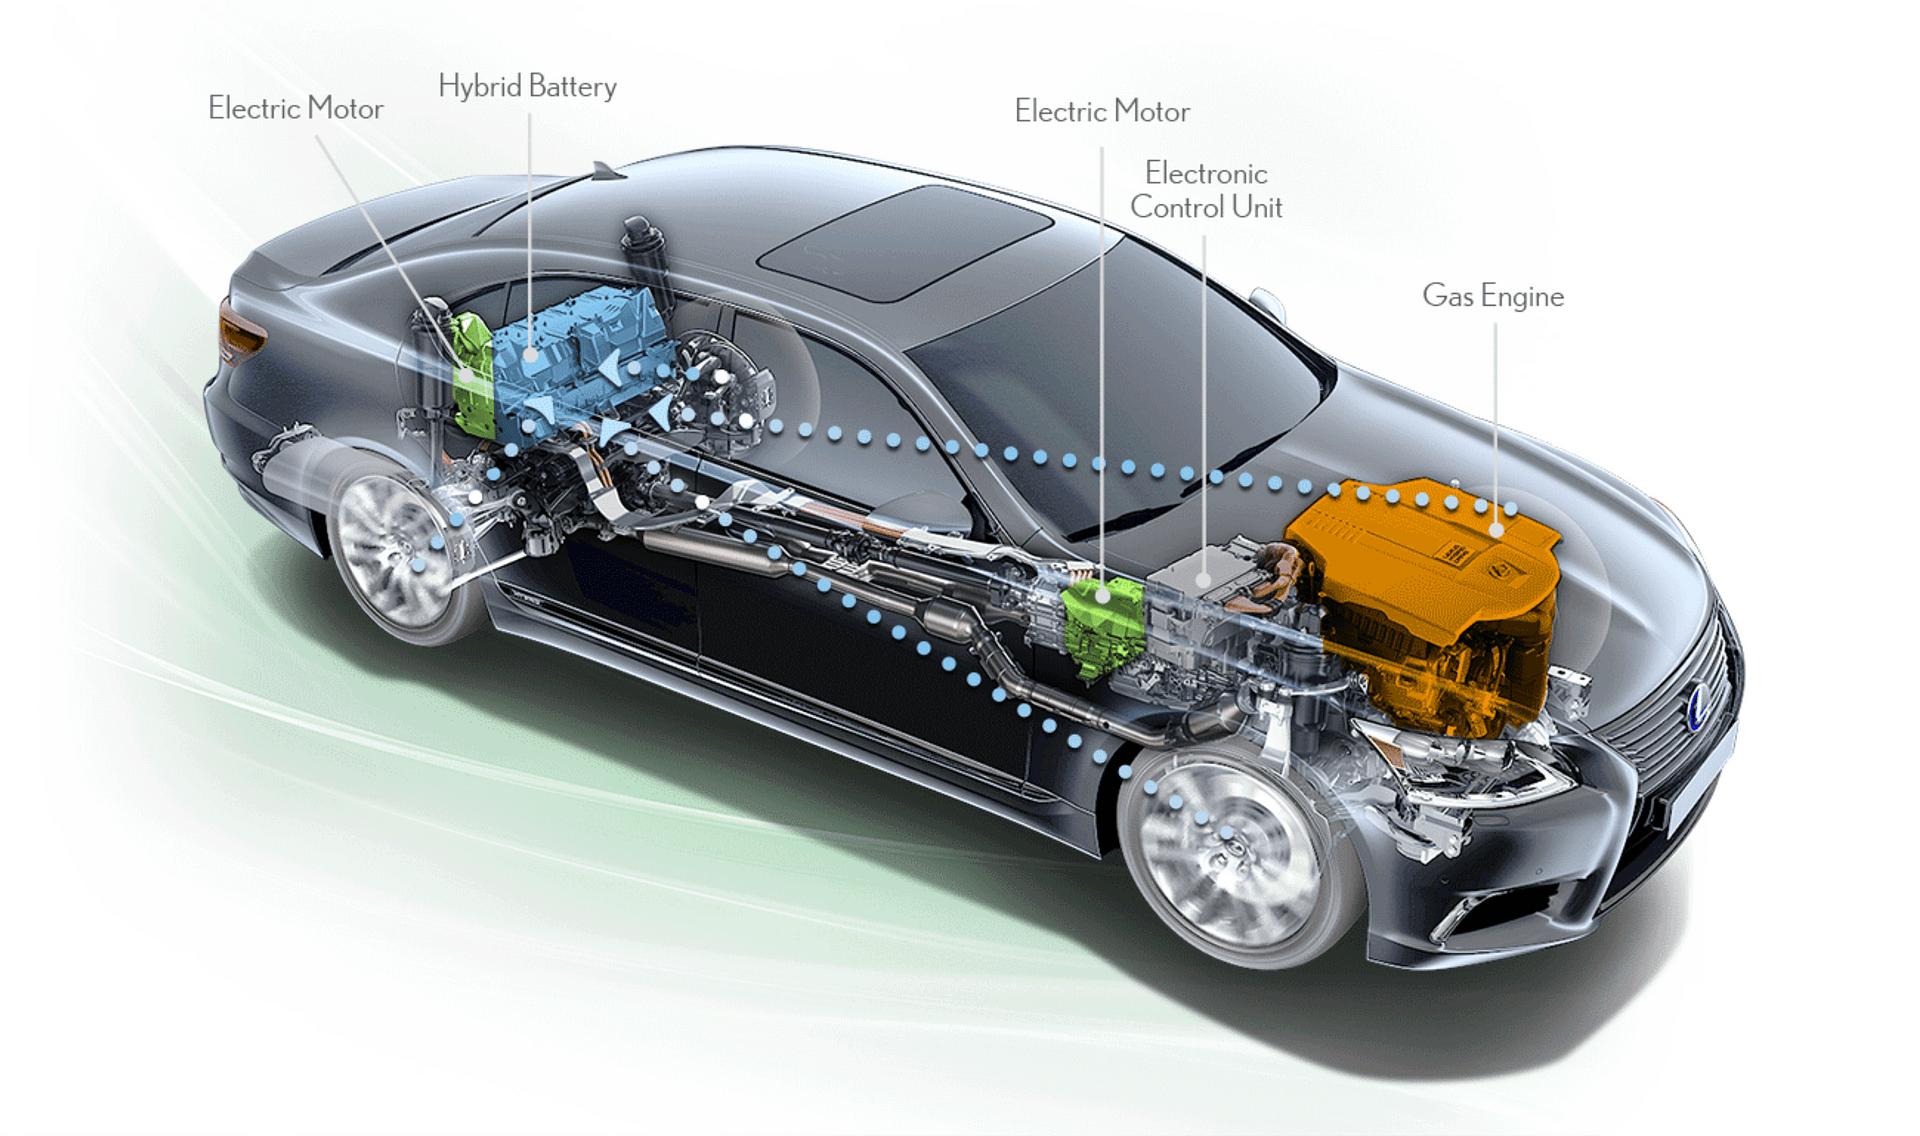 Why Do Hybrid Vehicles Have Two Batteries